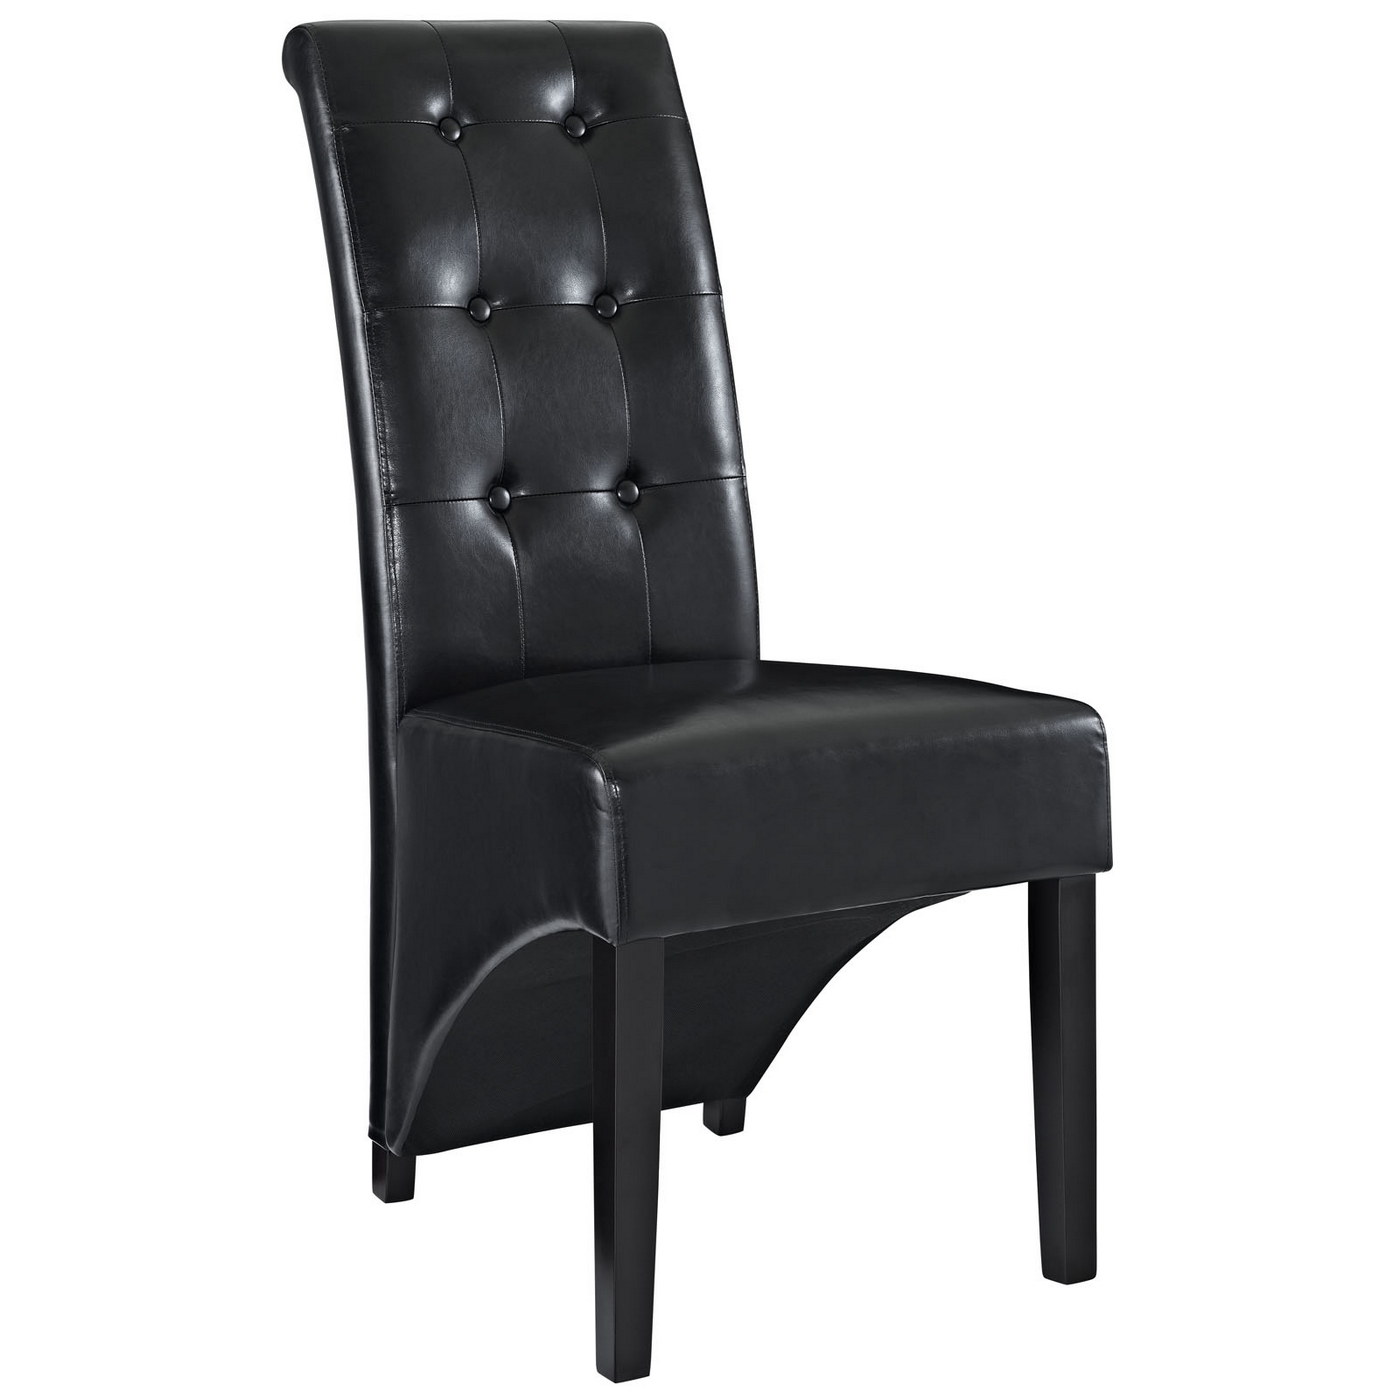 Preside modern stylish button tufted vinyl dining side for Modern black dining chairs